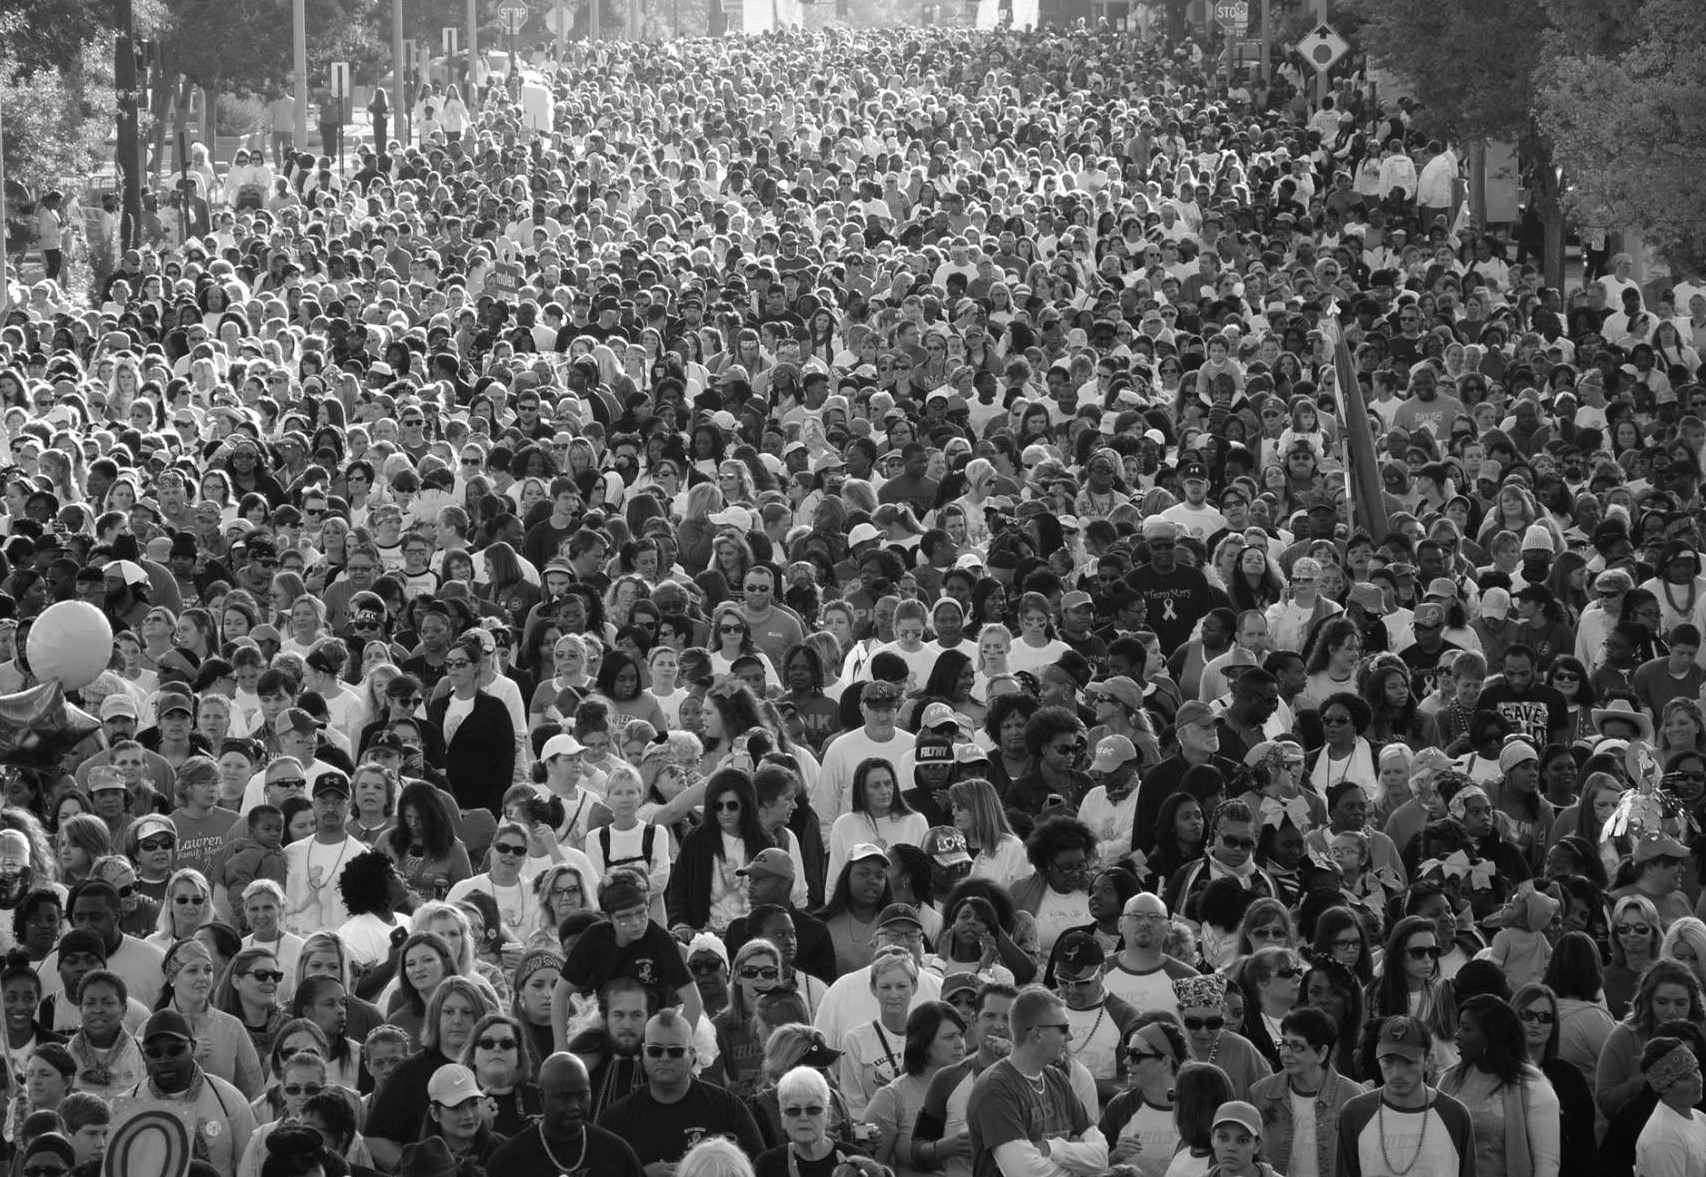 crowd-shot-Black-and-White-1